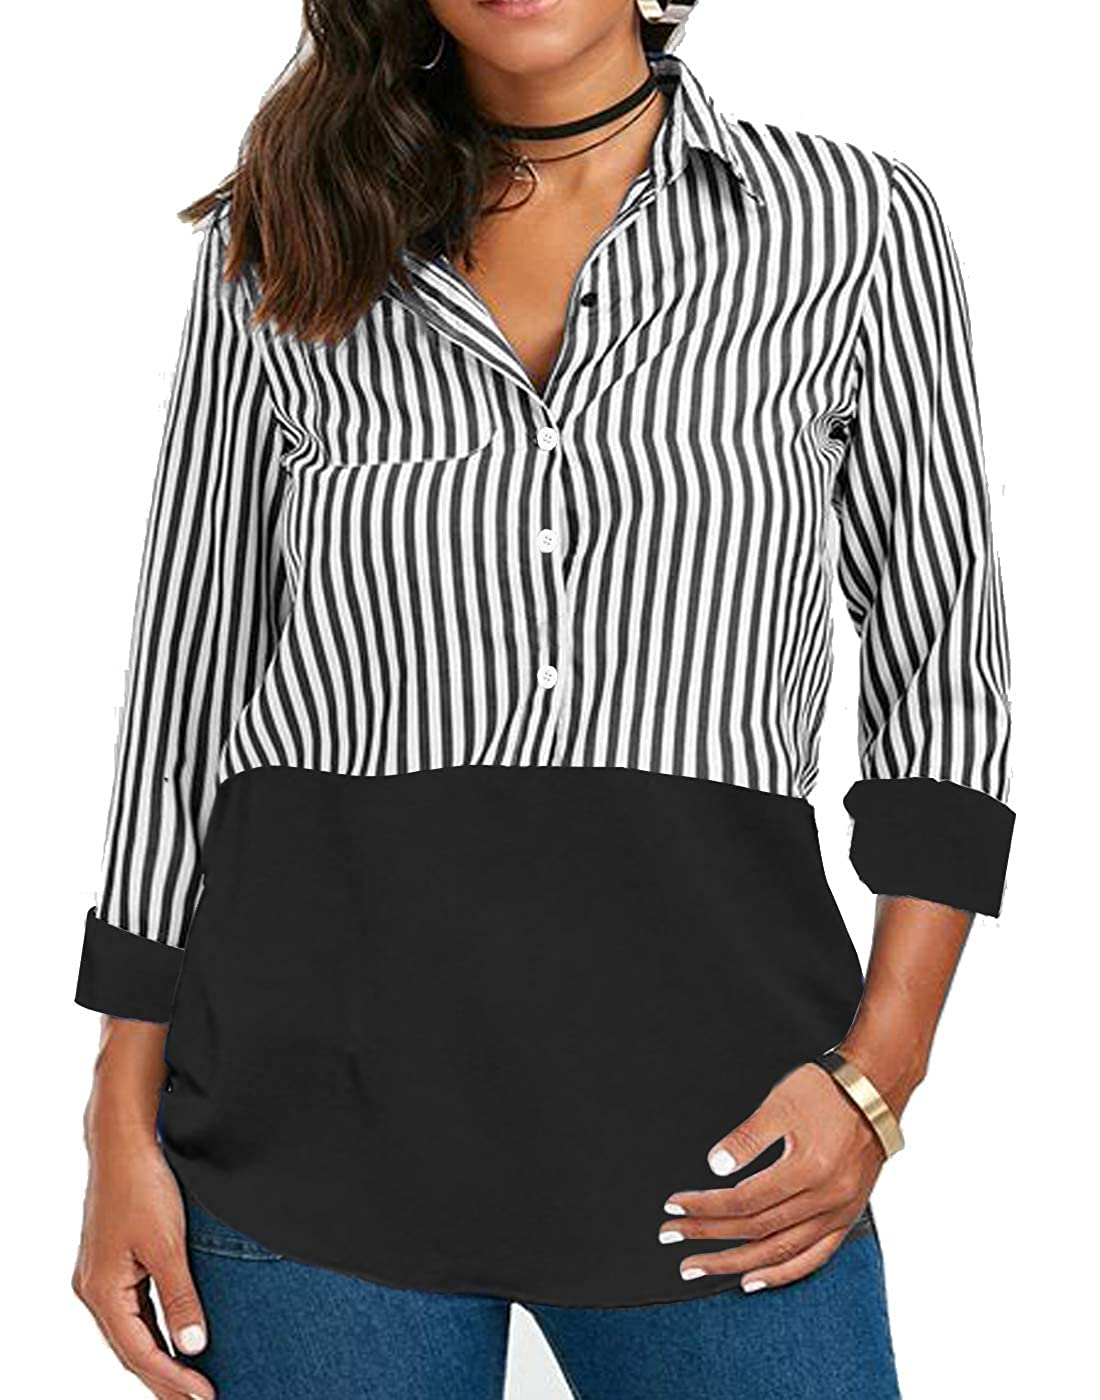 18056f72ded Amazon.com: Women Long Sleeve Blouse T Shirt Tops Tunic Button Blouses Work  Ladies Striped Tshirt Casual Juniors V Neck: Clothing